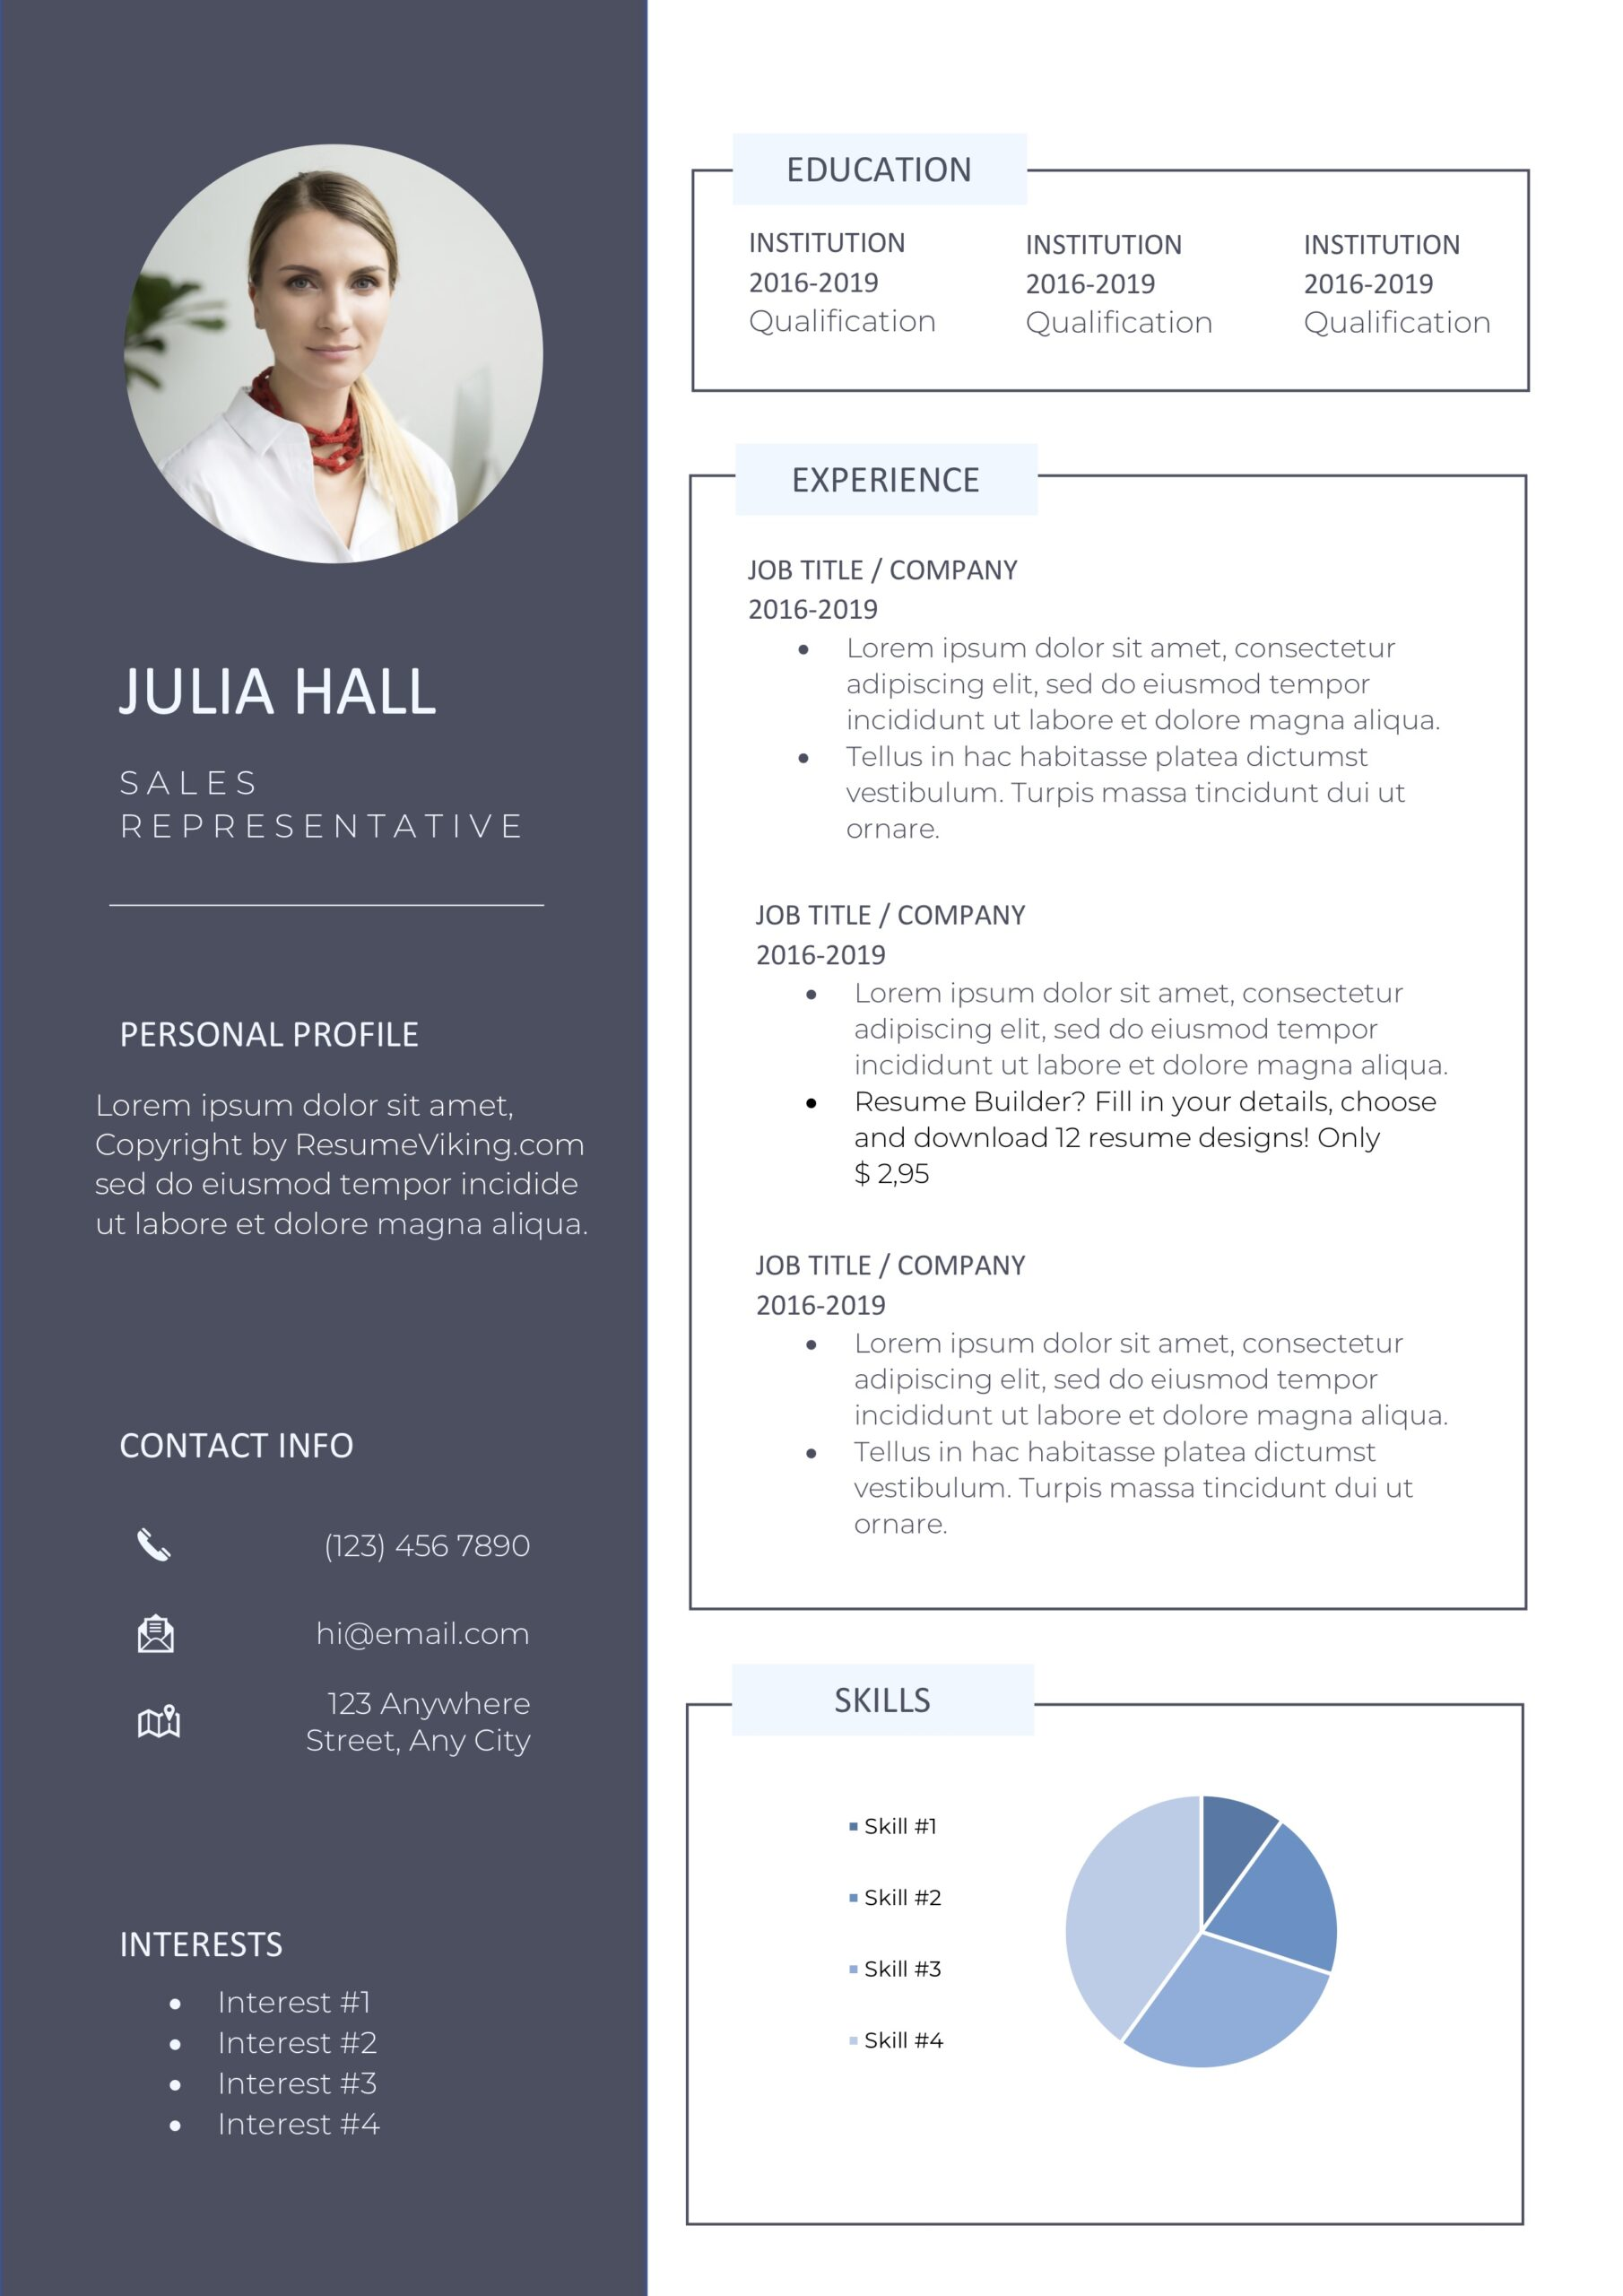 resume templates pdf word free downloads and guides grace resumeviking self starter Resume Resume Templates 2019 Download